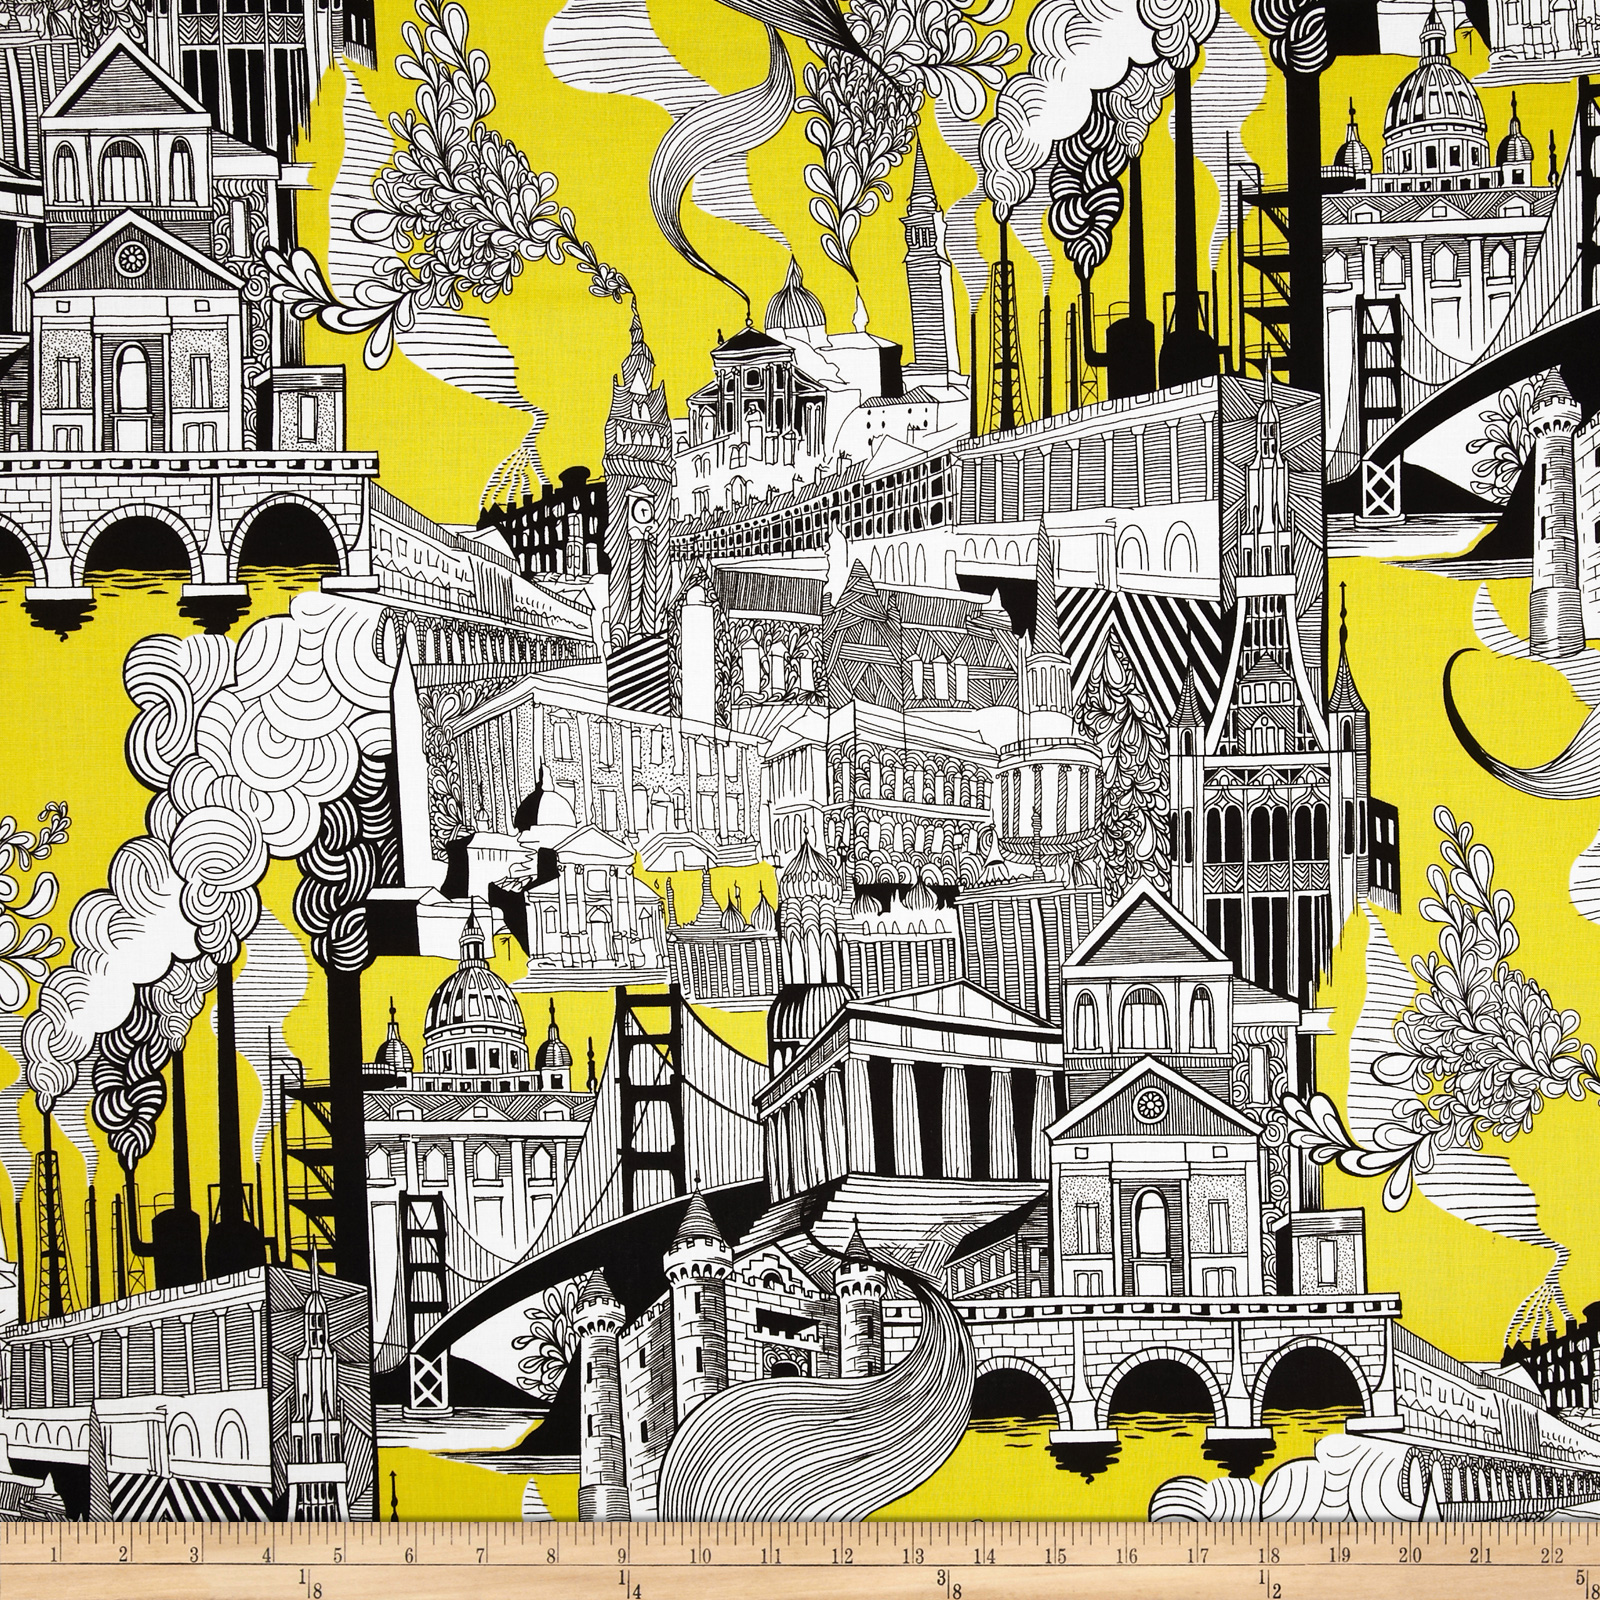 Black & White Smoke Stack City Black/White/Yellow Fabric